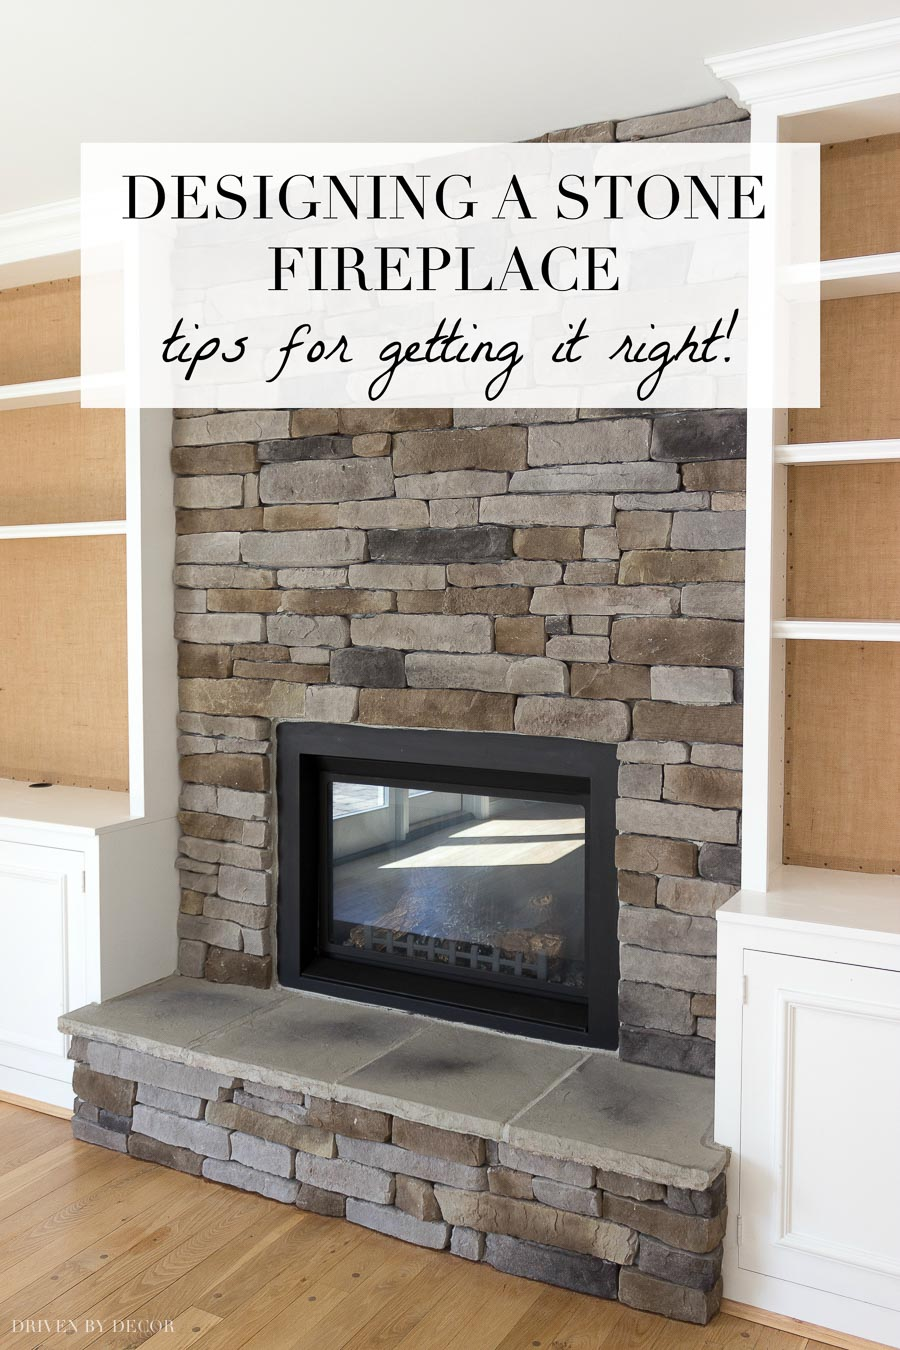 Designing A Stone Fireplace Tips For Getting It Right Driven